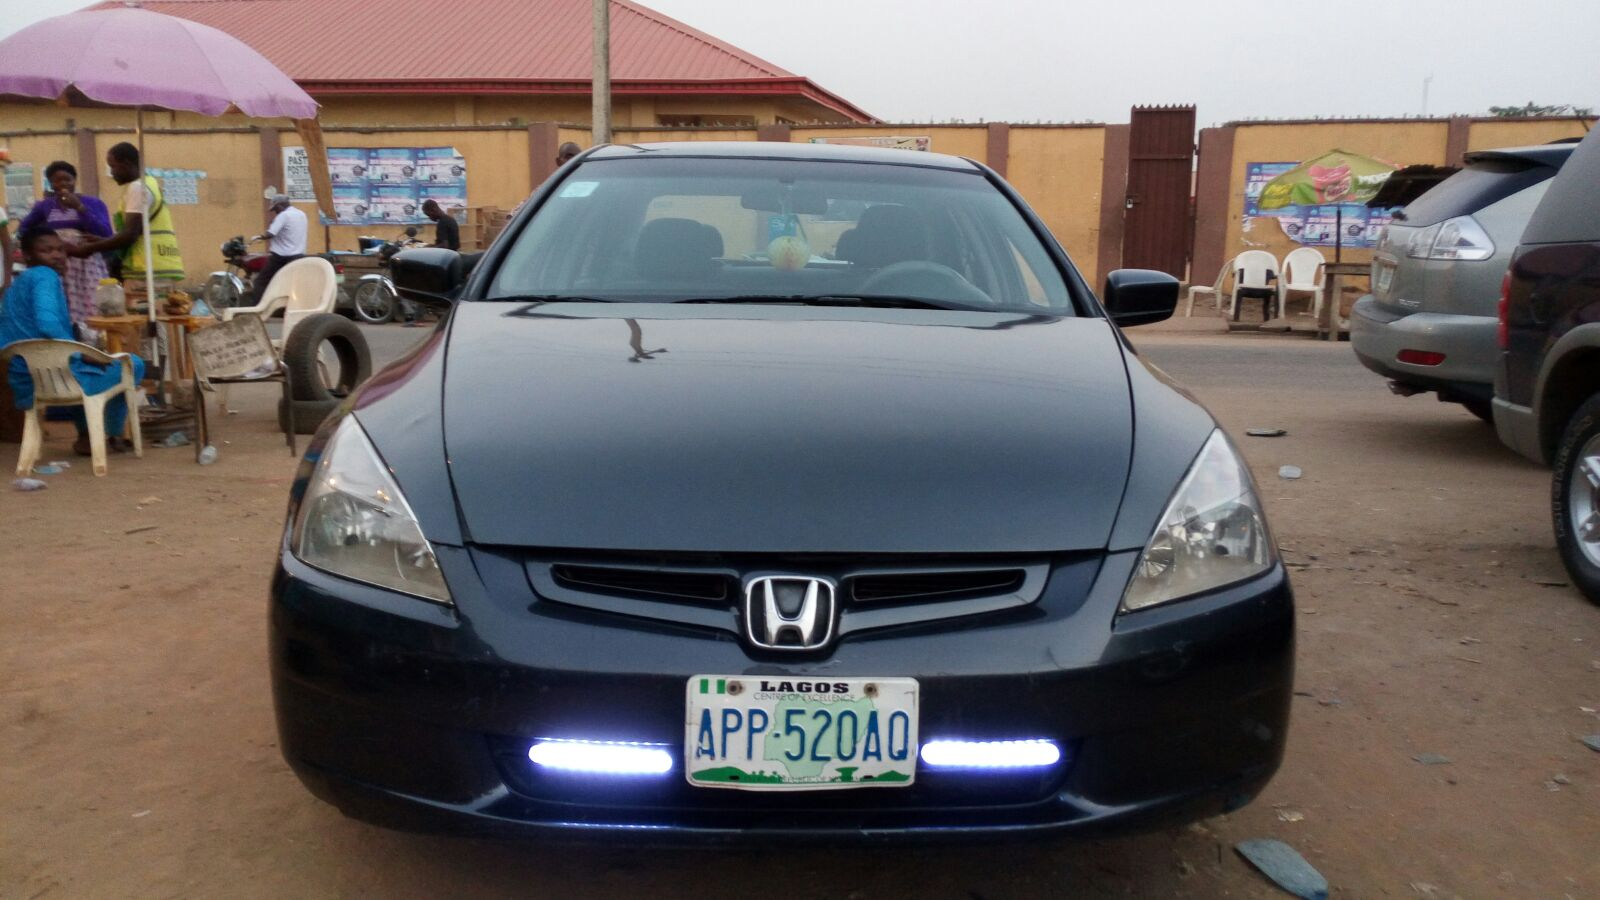 Auto Gele For Sale In Nigeria: Pictures Of Car For Sale In Nigeria Under 1 Million Naira